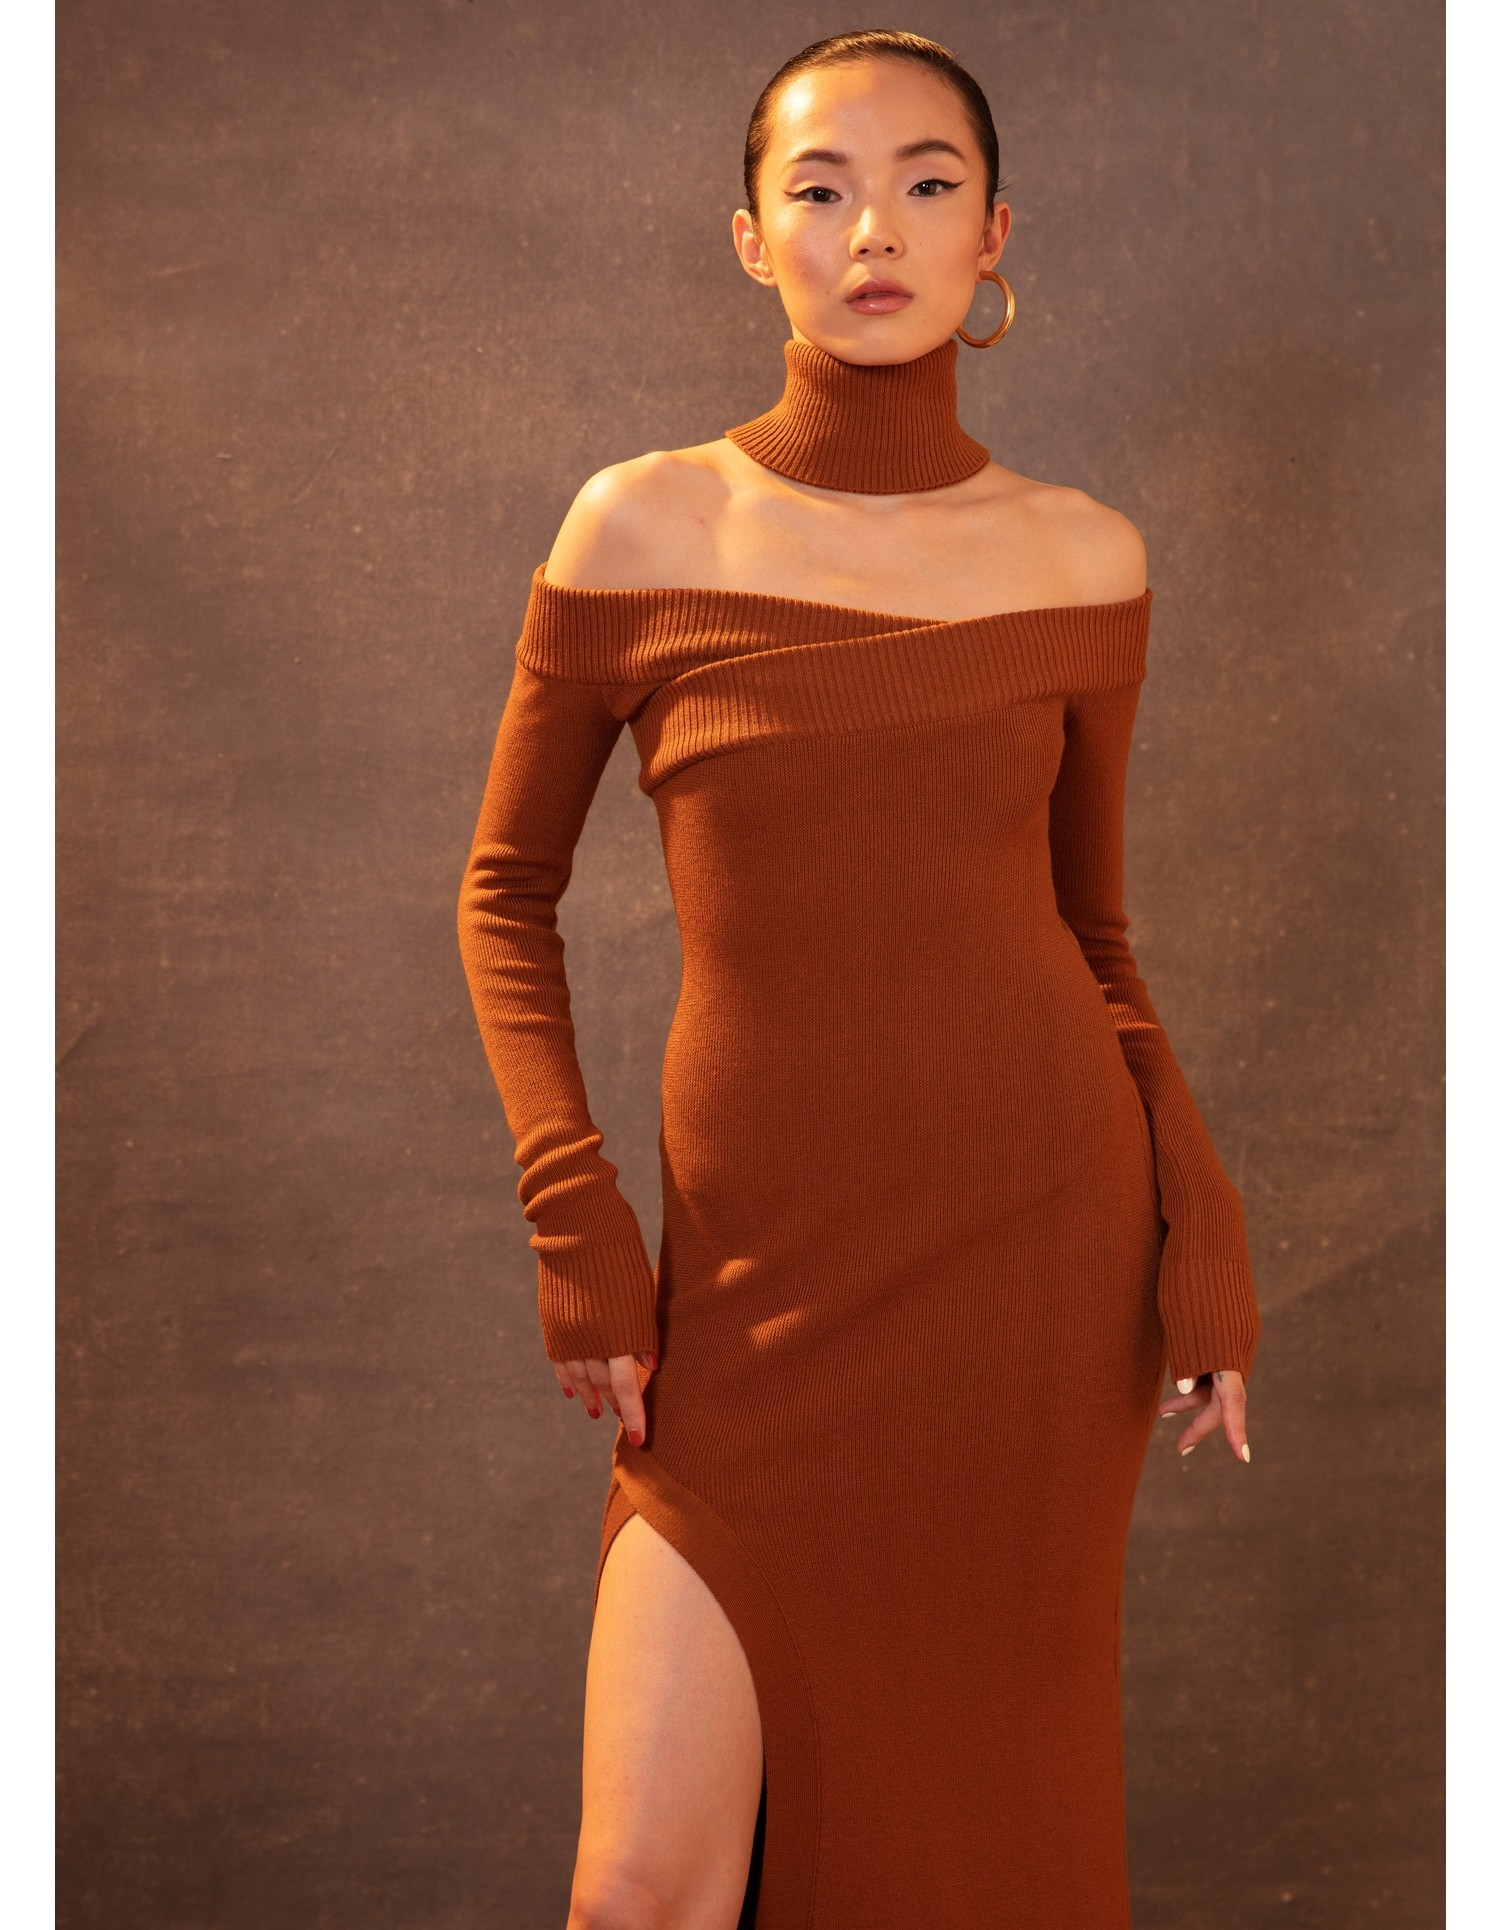 MONSE Off the Shoulder Turtleneck Arch Dress in Tan on Model Full View